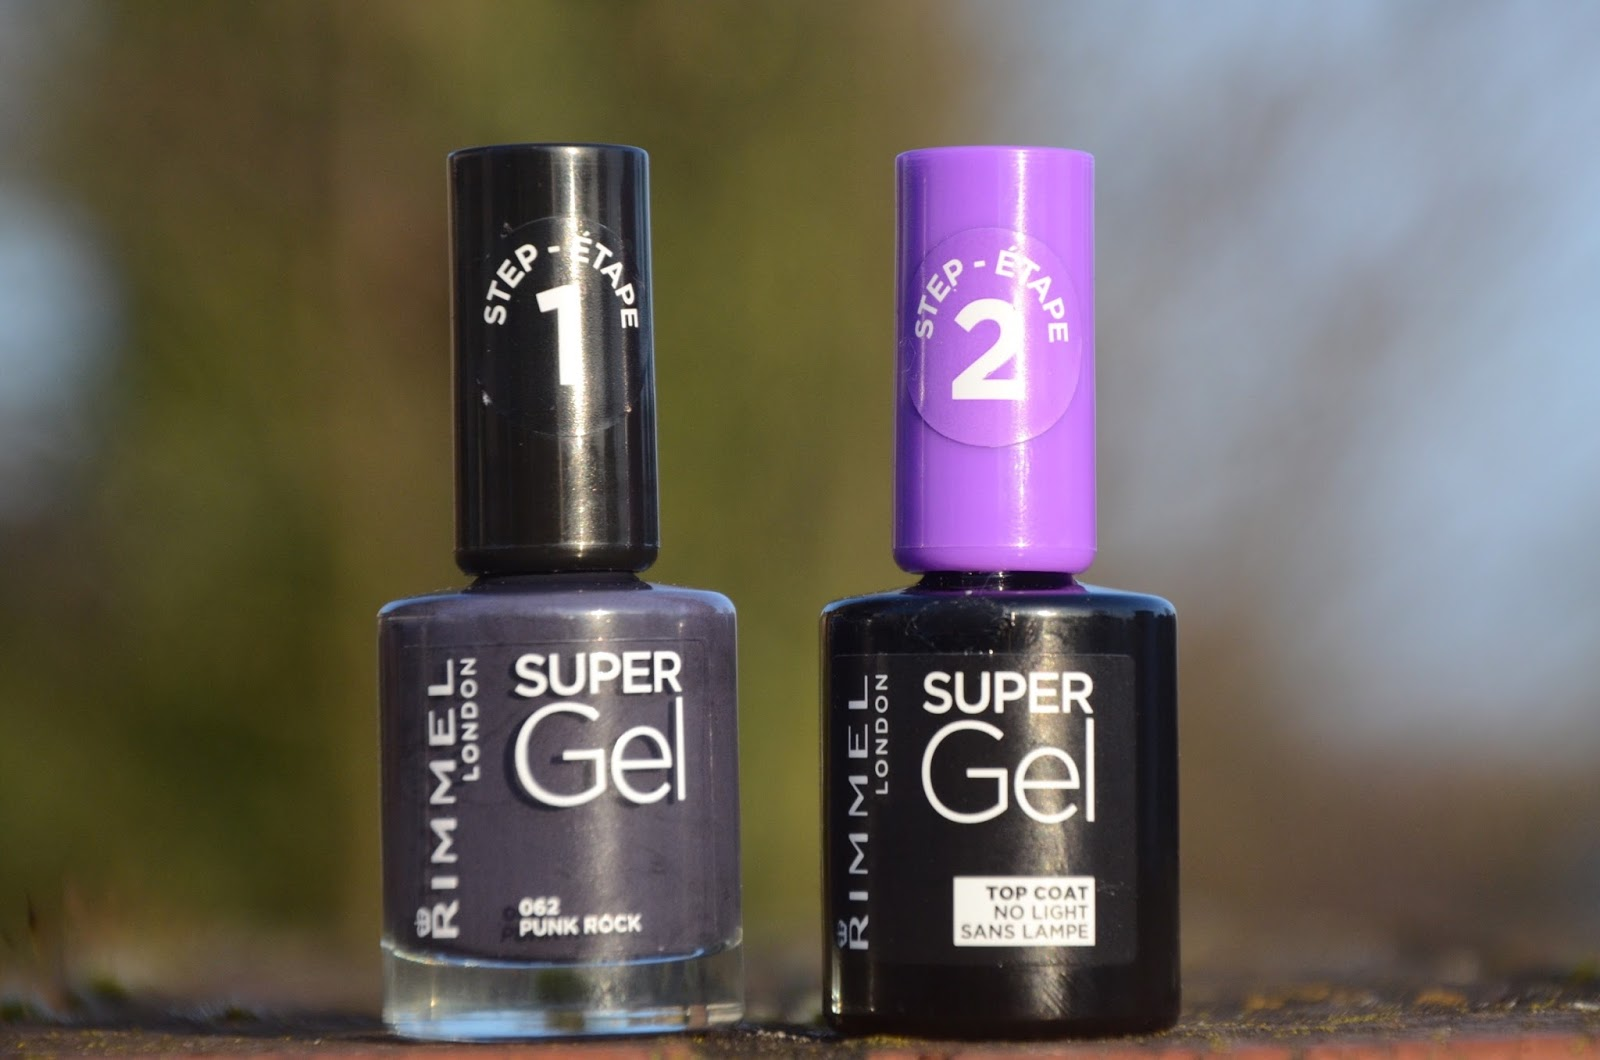 Rimmel London Super Gel in Punk Rock and Rimmel London Super Gel Top Coat